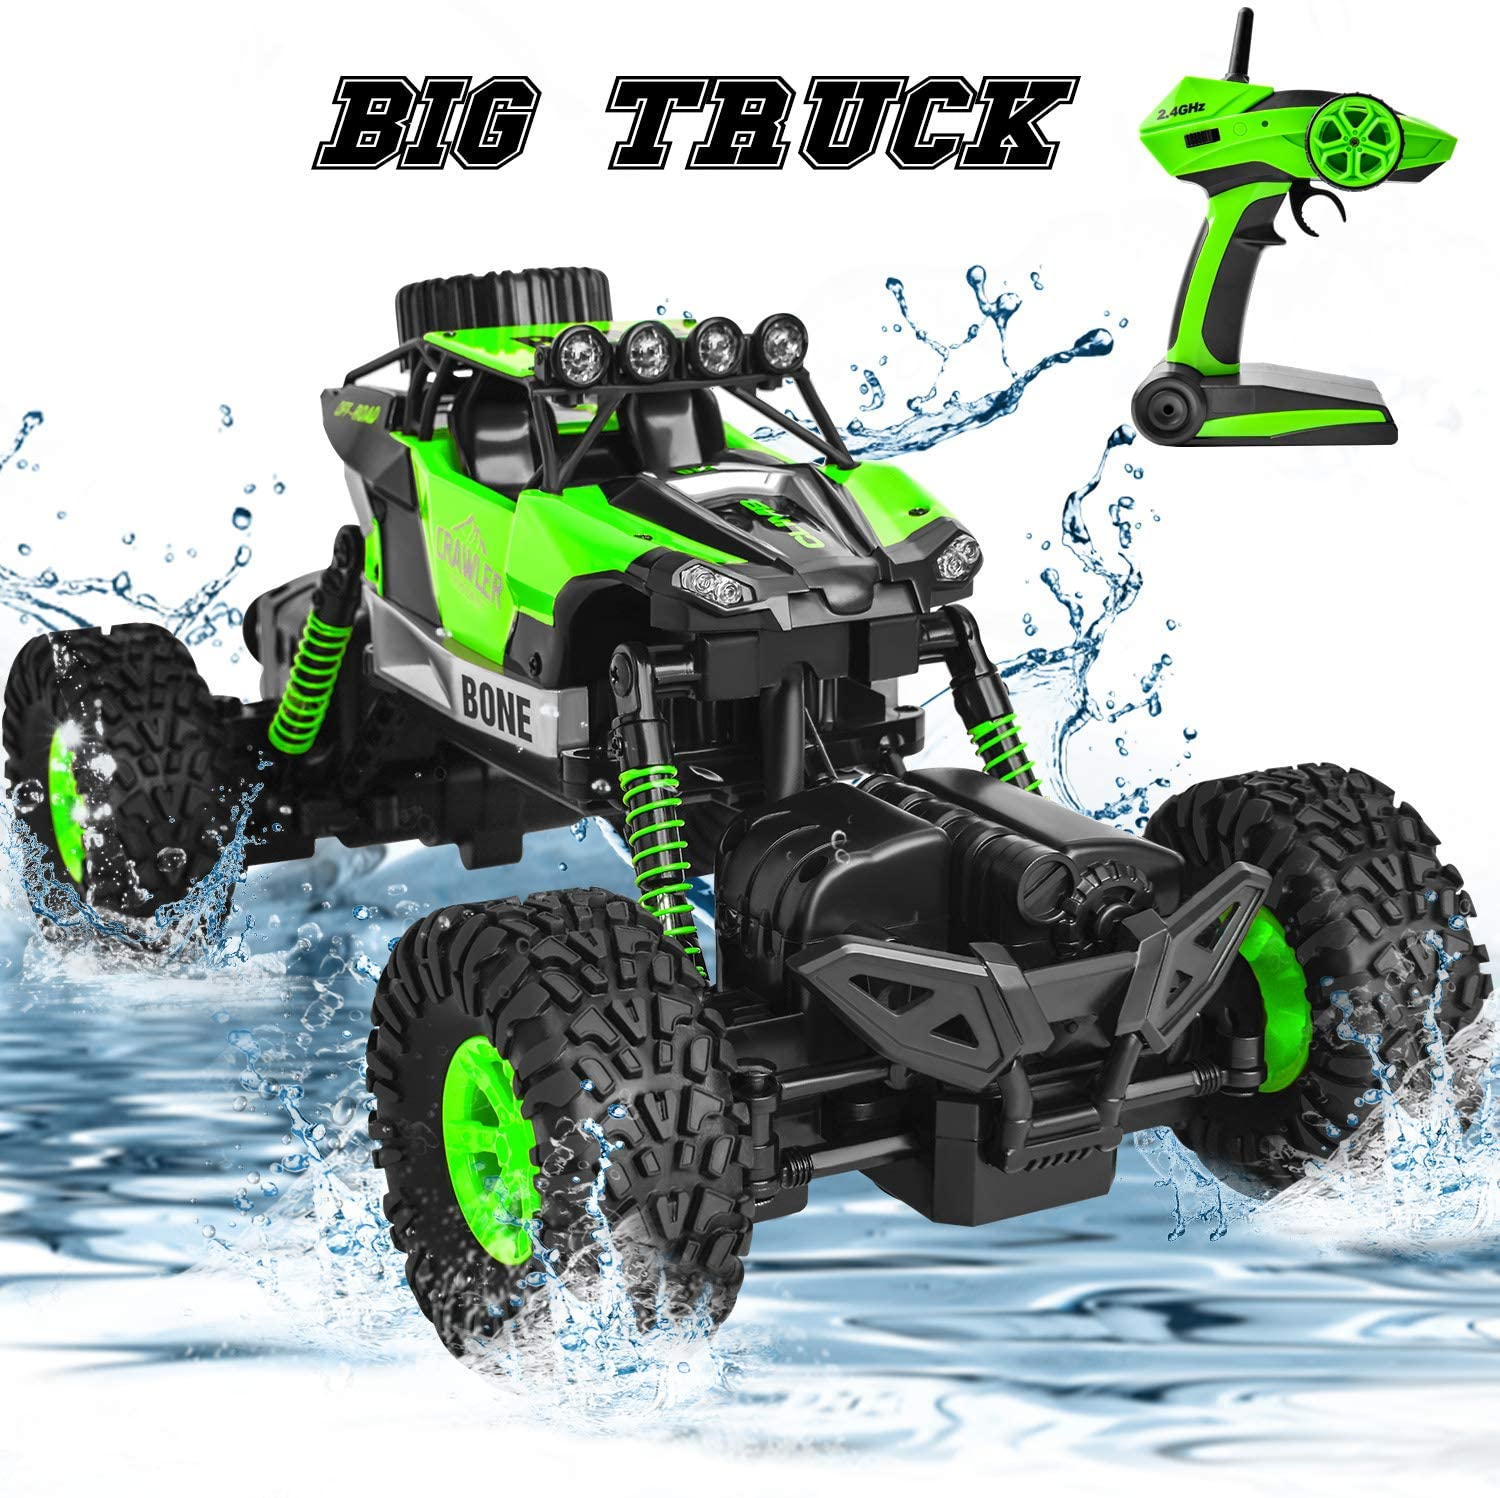 Waterproof Rc Trucks 4x4 Off Road Monster 1 16 4wd Remote Control Trucks Rc Crawler High Speed Racing Hobby Toys For Boys Kids Rc Trucks Aliexpress